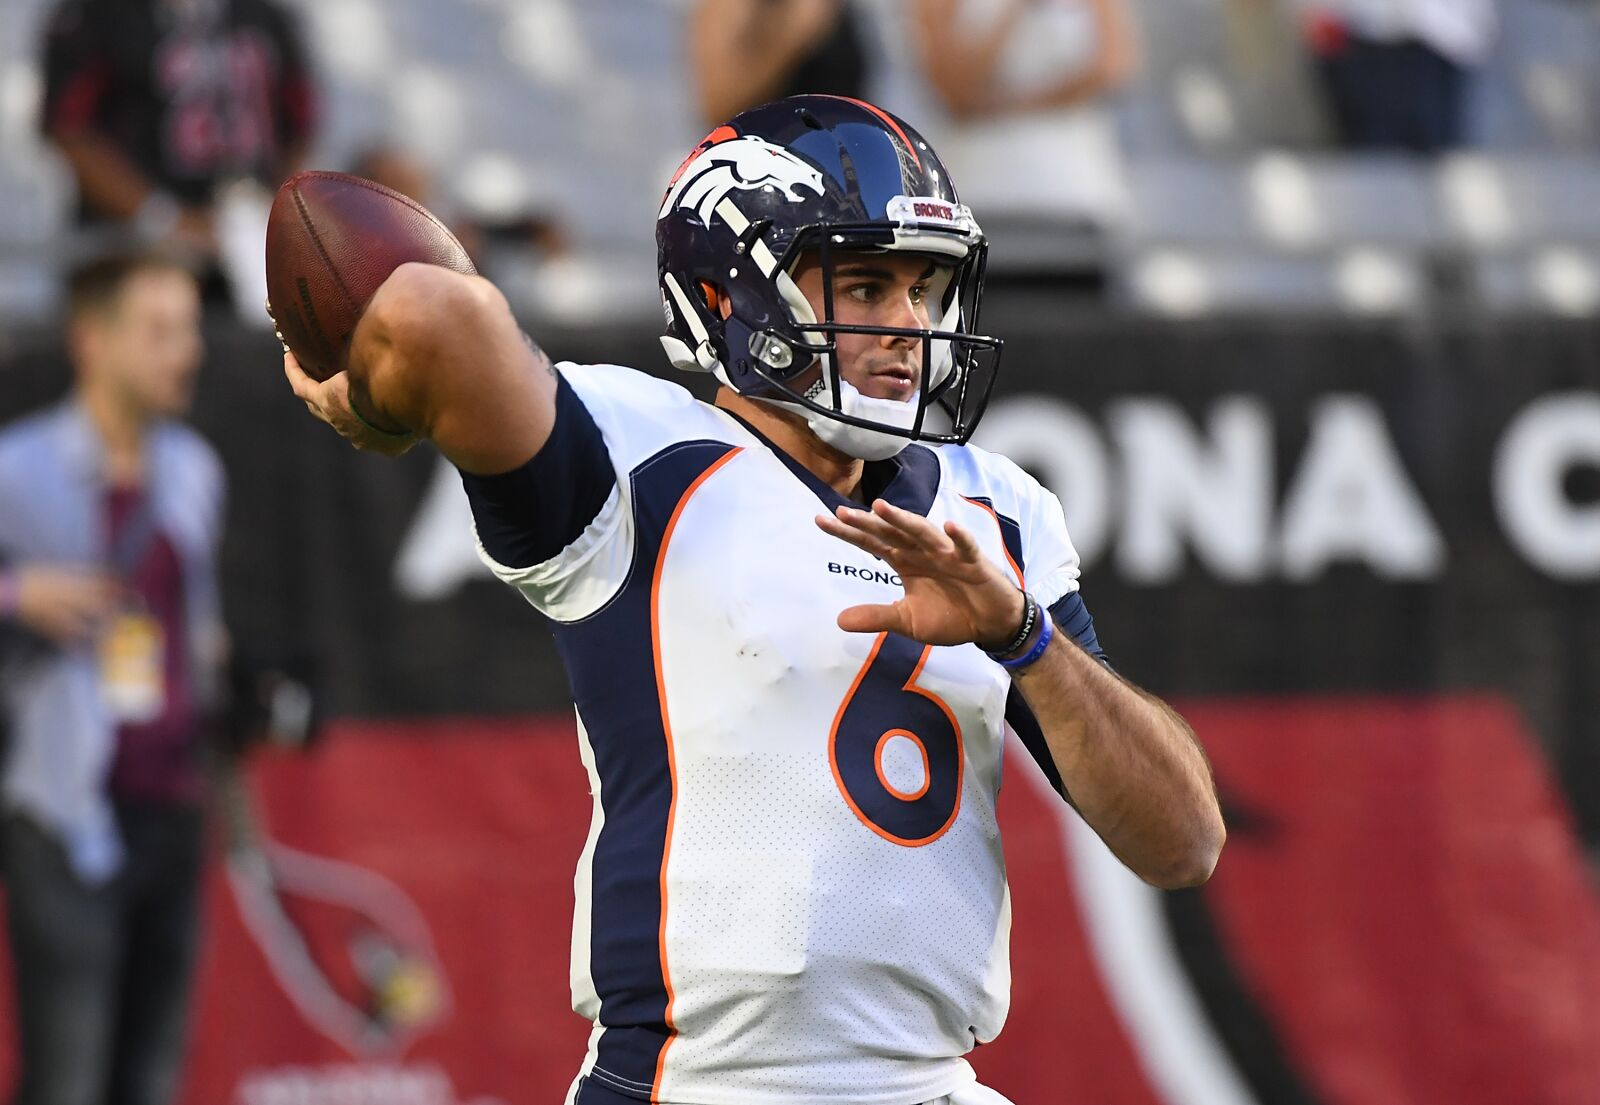 Chad Kelly gets yet another chance with Colts